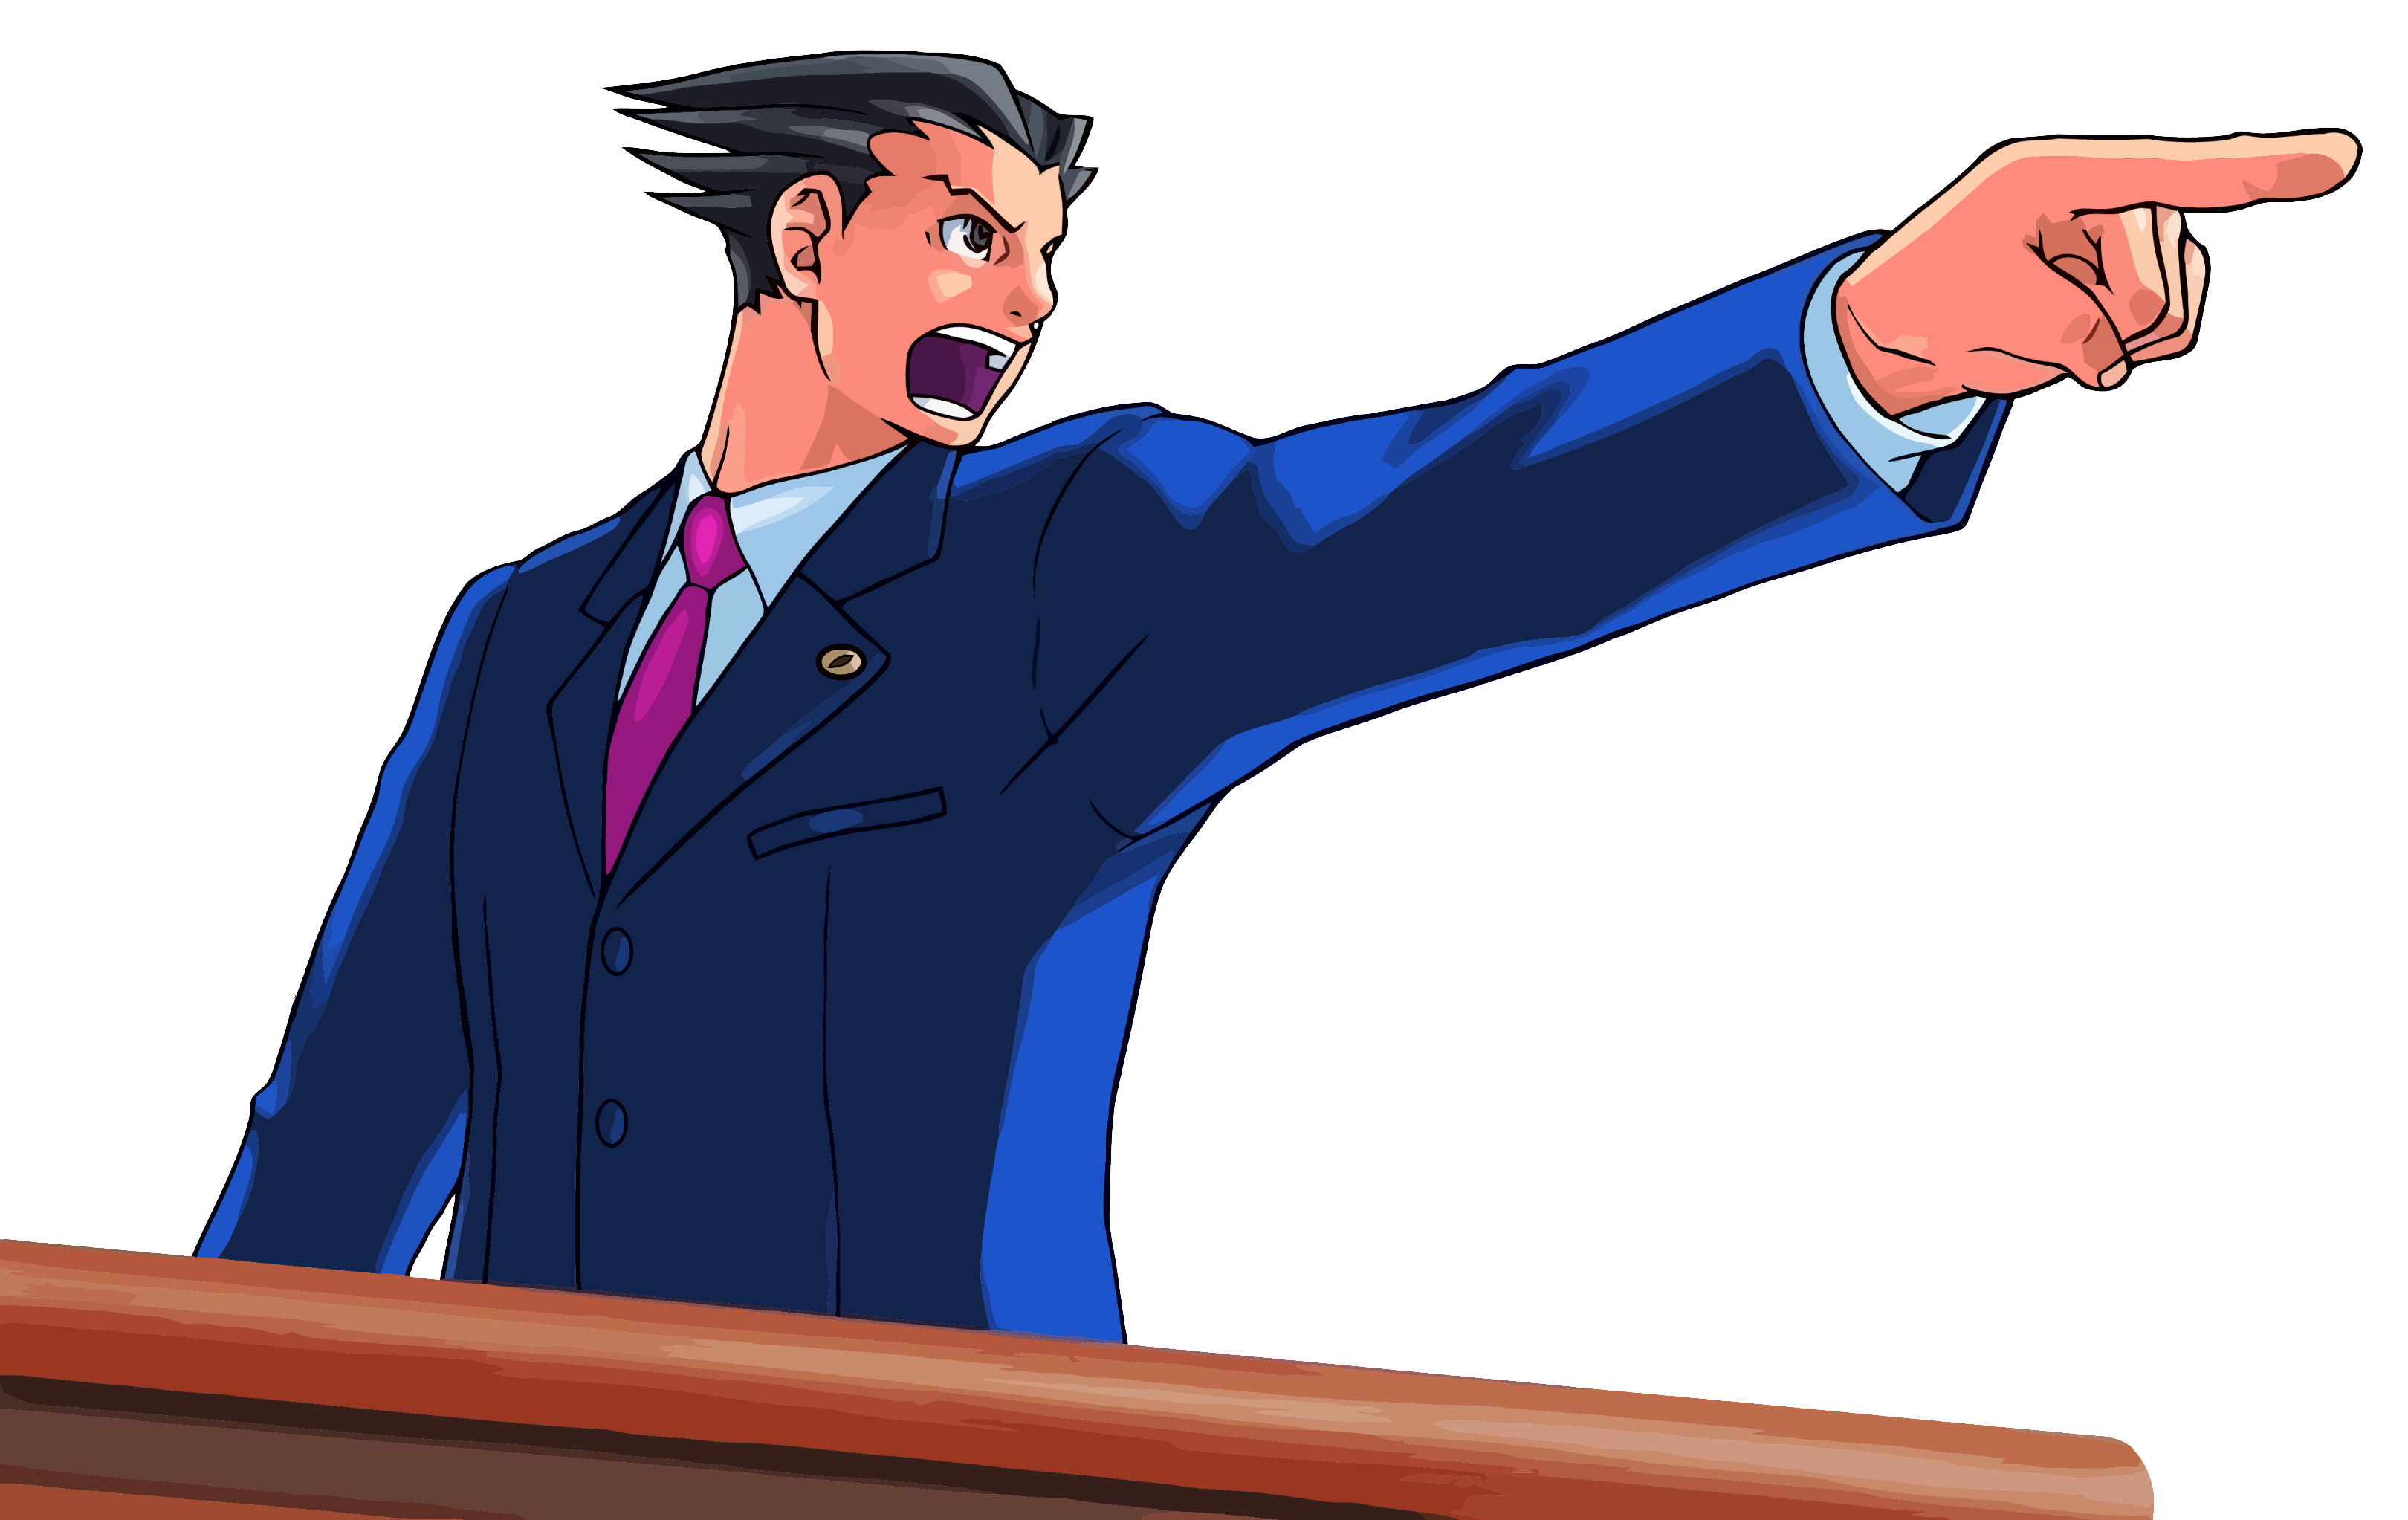 Ace png transparent images. Evidence clipart attorney